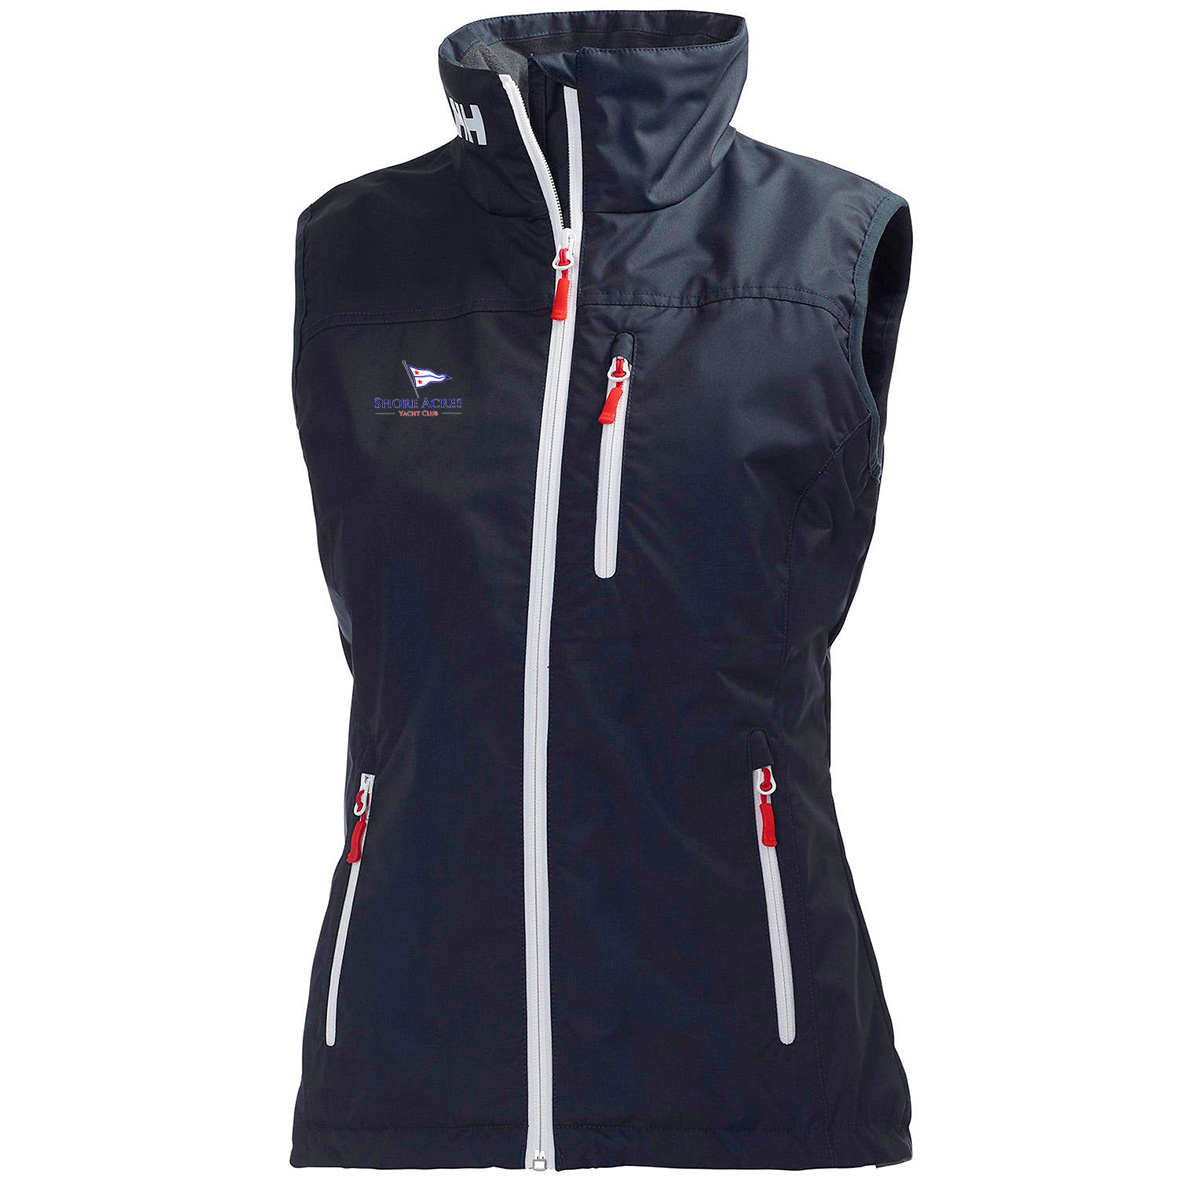 Shore Acres Yacht Club - Women's Helly Hansen Crew Vest (SAYC402)